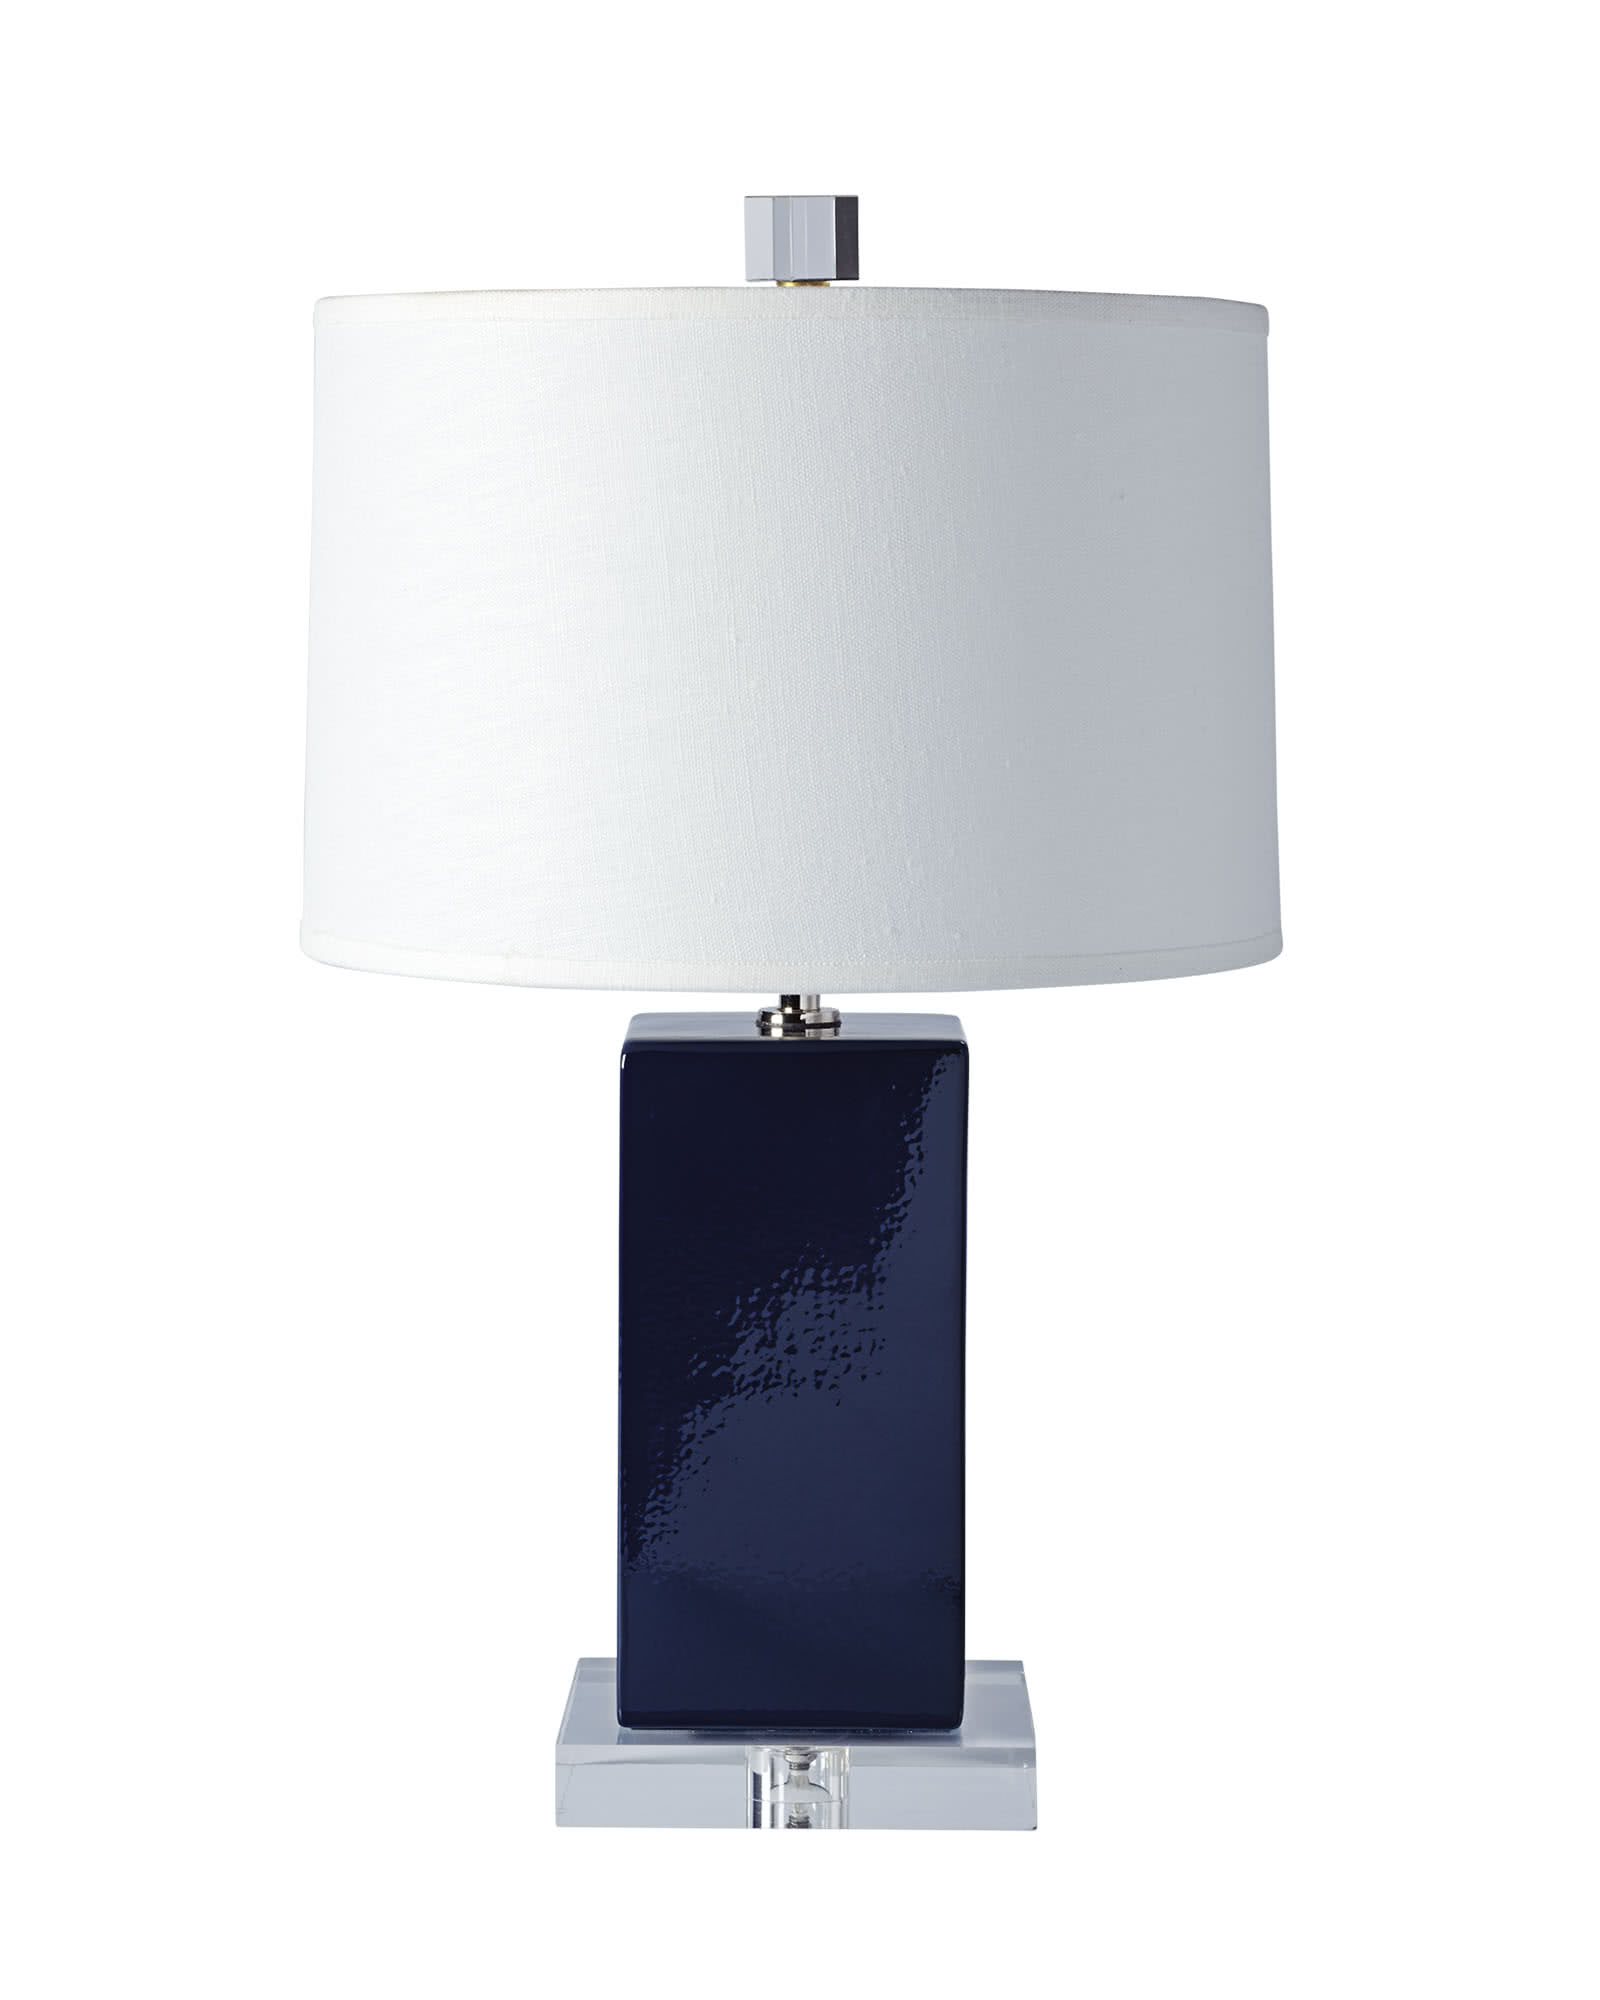 Darby Table Lamp